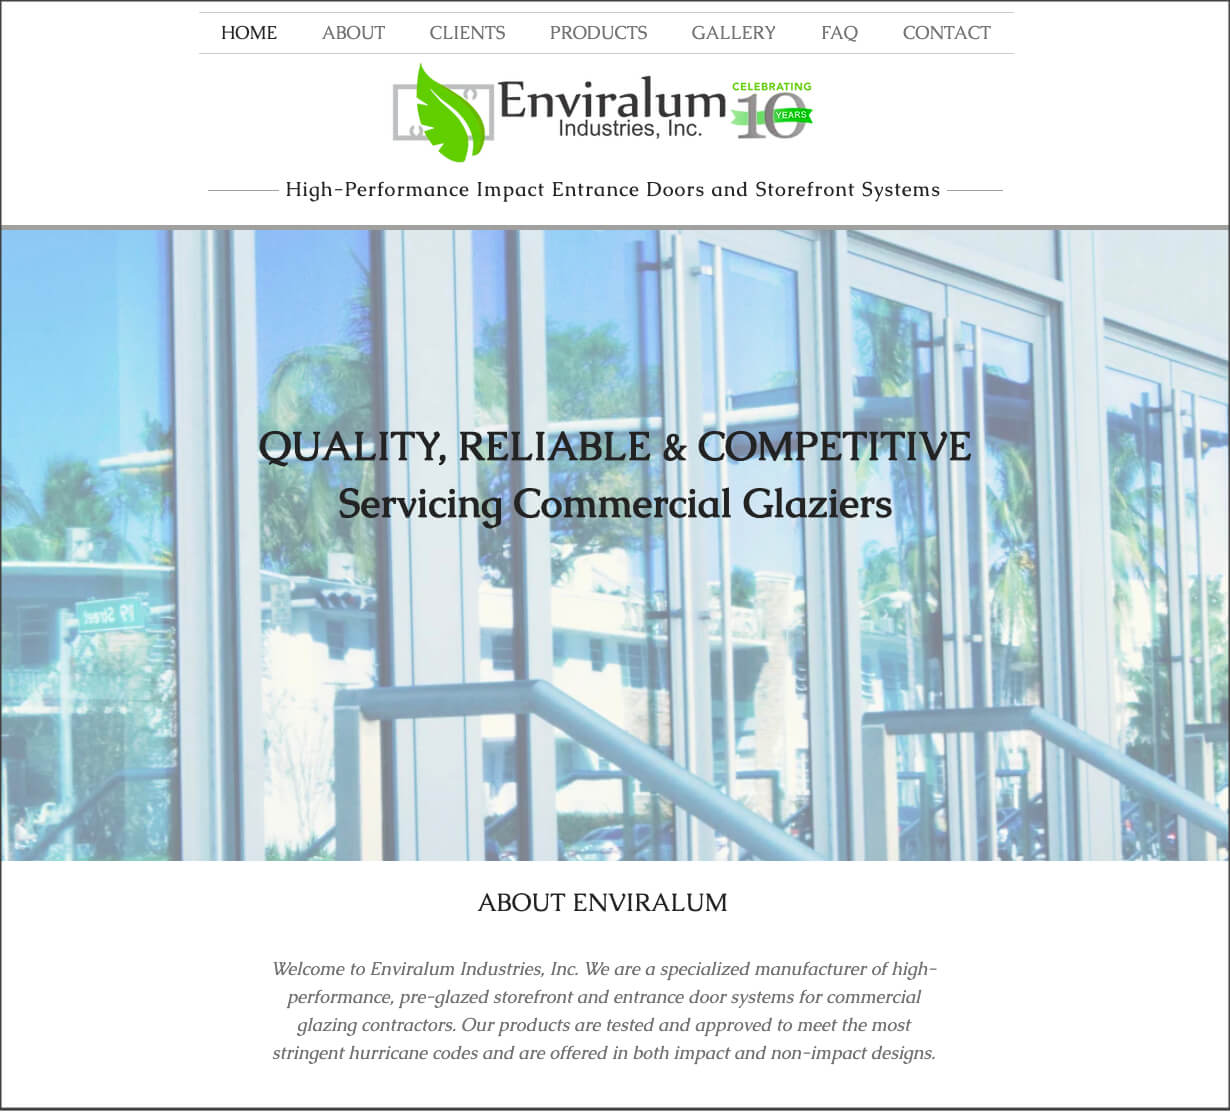 Enviralum Industries Celebrates 10 Years and Launches New Website